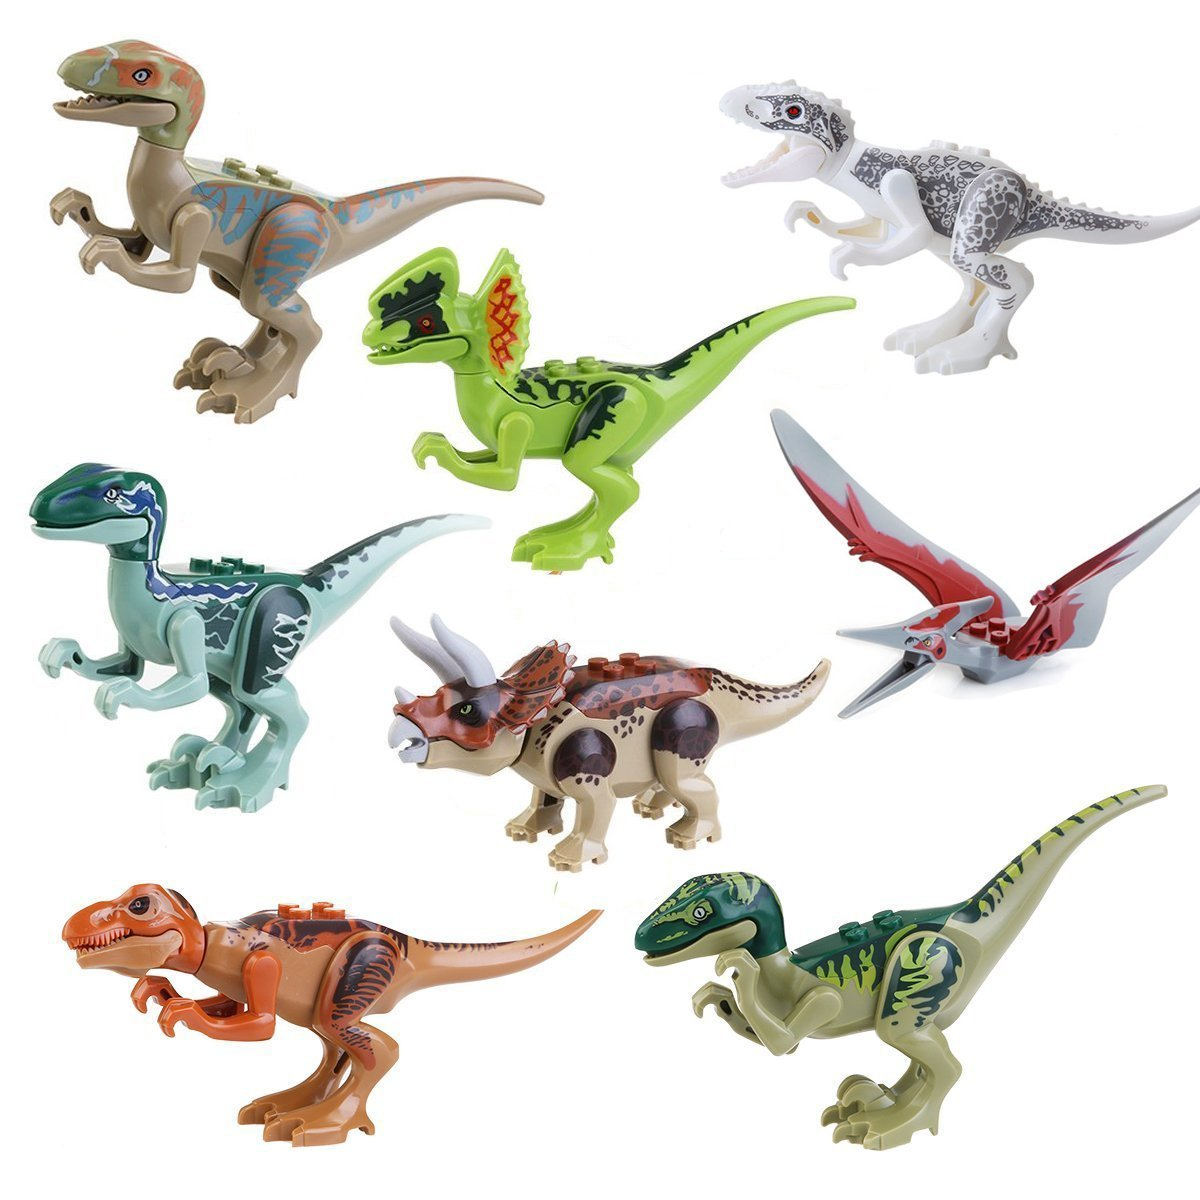 8x Dinosaurs World Brick Blocks: Rex T-Rex Pteranodon Raptor CJ451 by Magic show MS